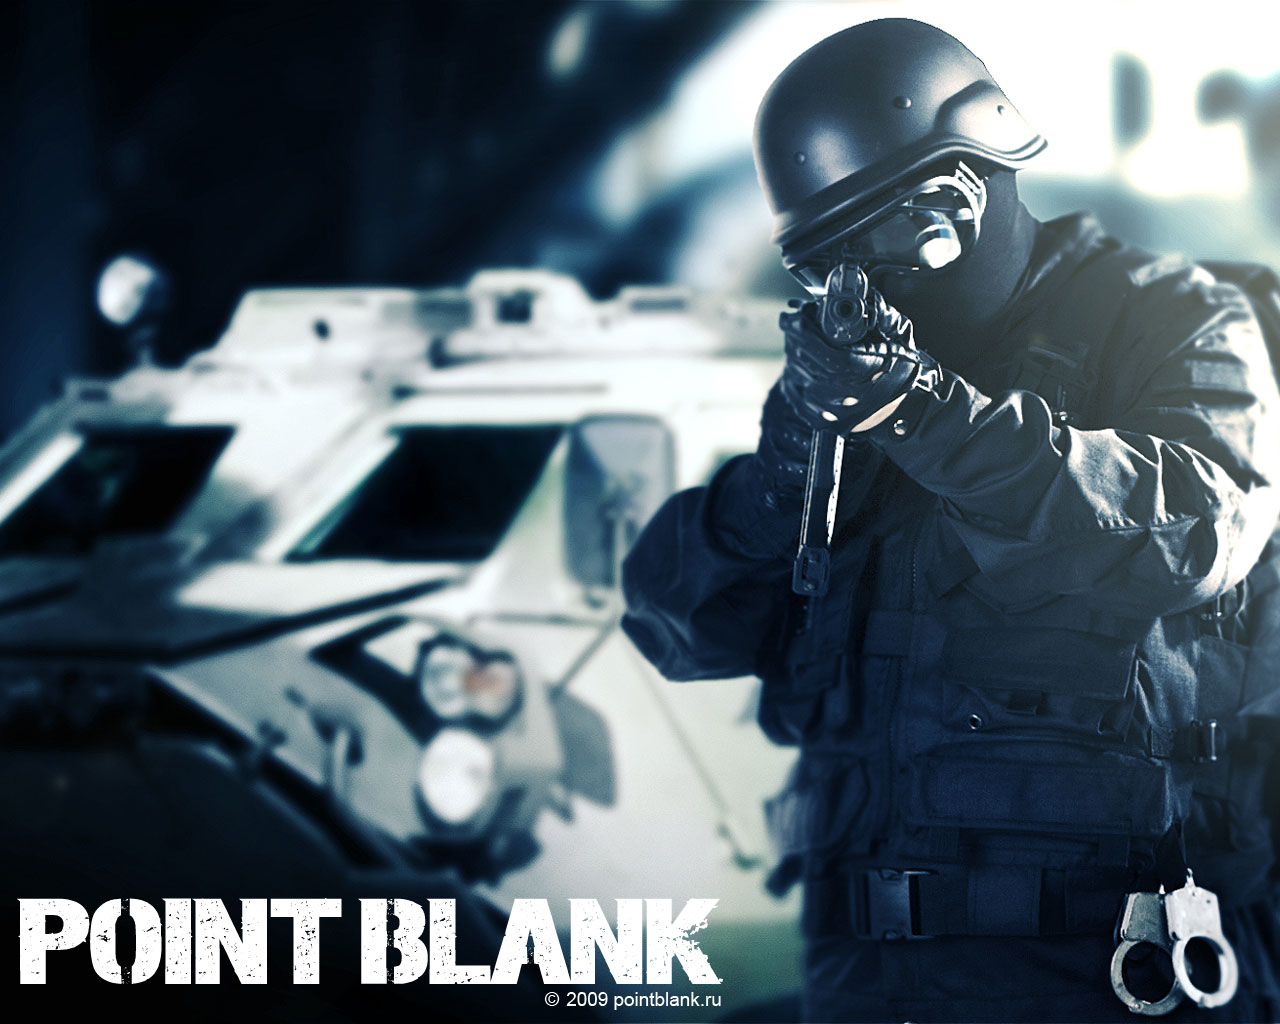 http://2.bp.blogspot.com/_qGbWdzkhB-s/TB-q3DdAtsI/AAAAAAAAFbM/iXHaru99uao/s1600/point-blank-video-game-wallpapers.jpg